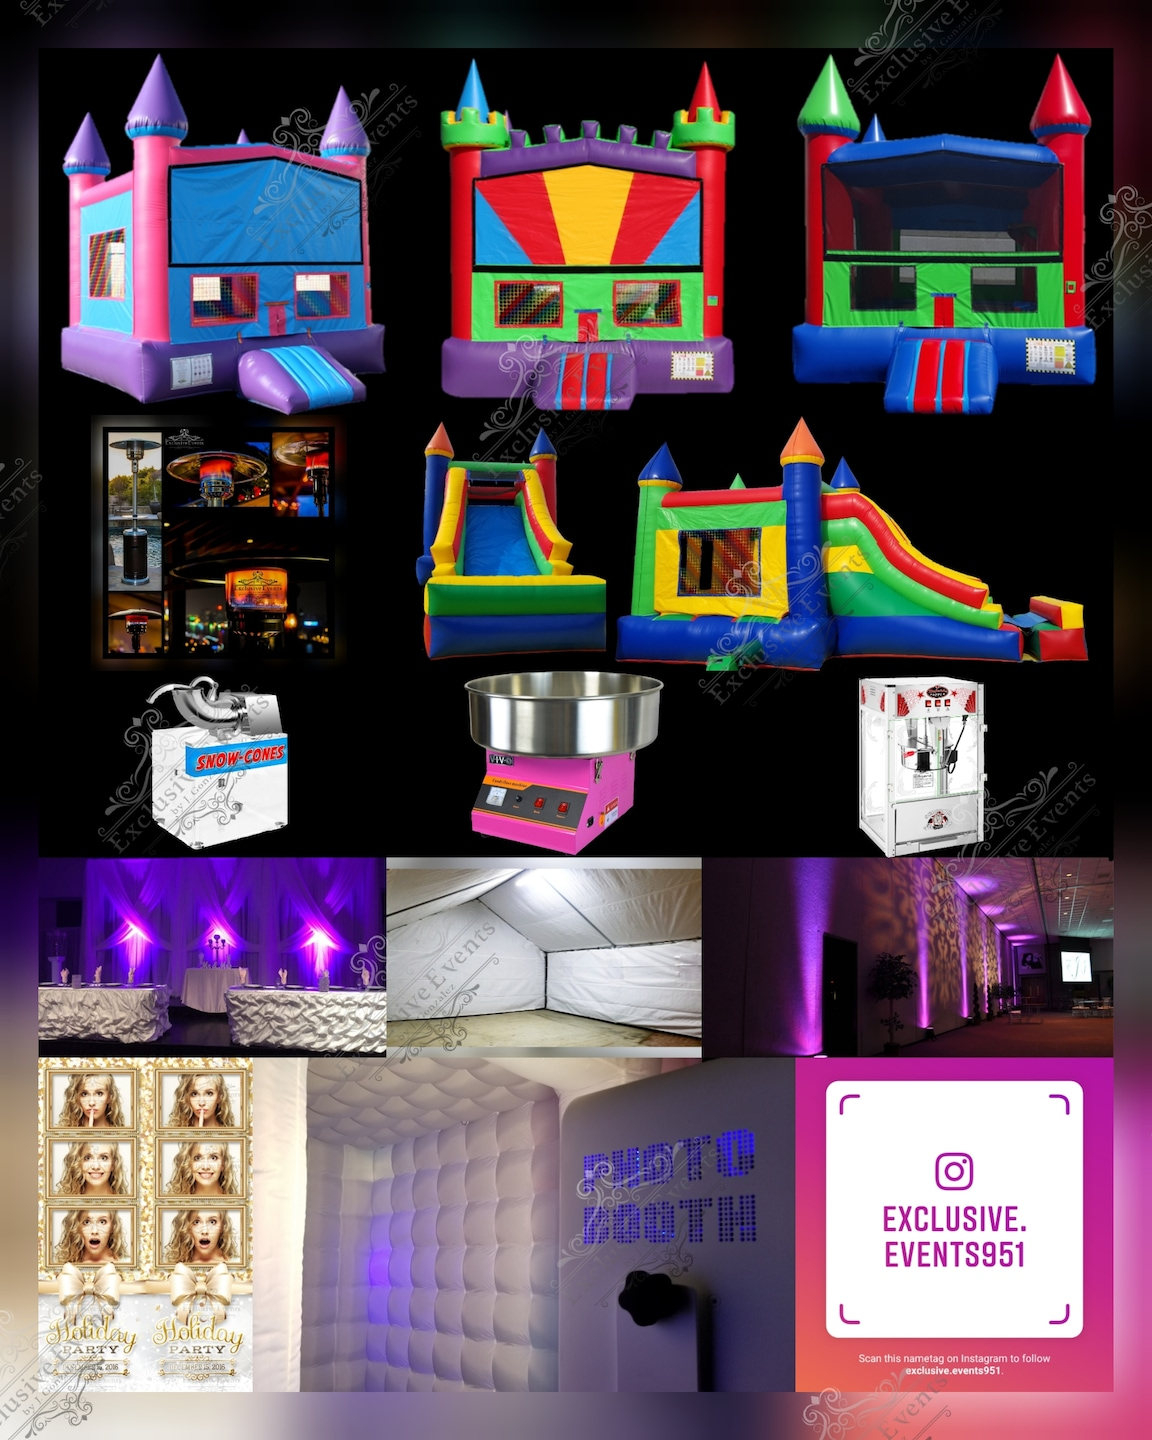 Exclusive Events, Party Rentals, Photo Booths